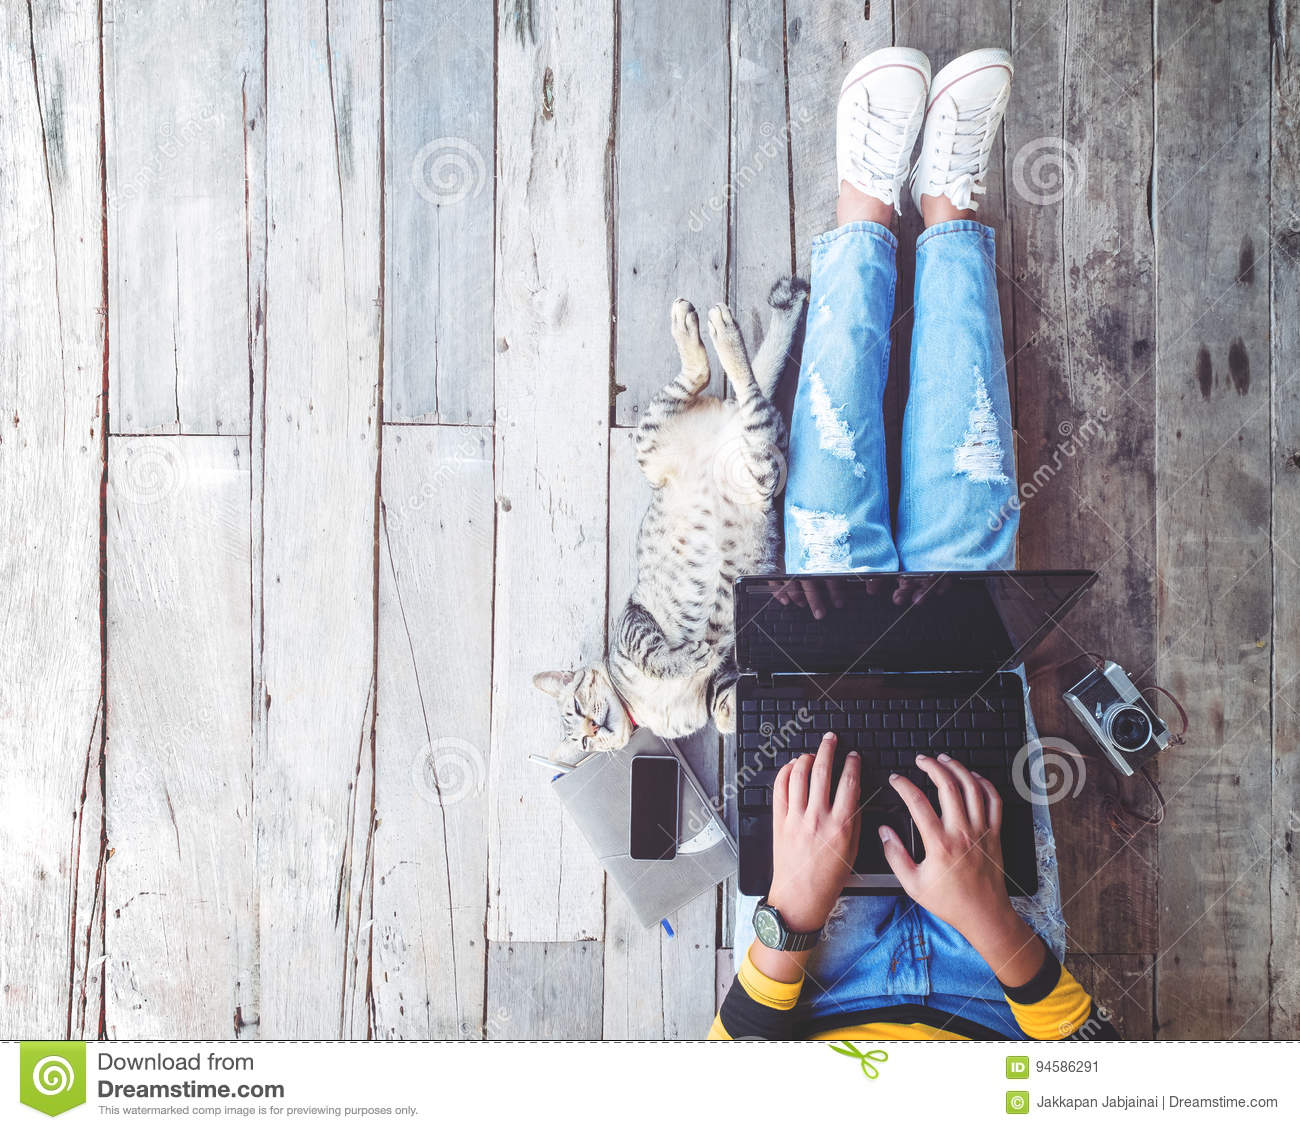 Girl in jeans working on the laptop computer assisted by her cat on the wooden floor